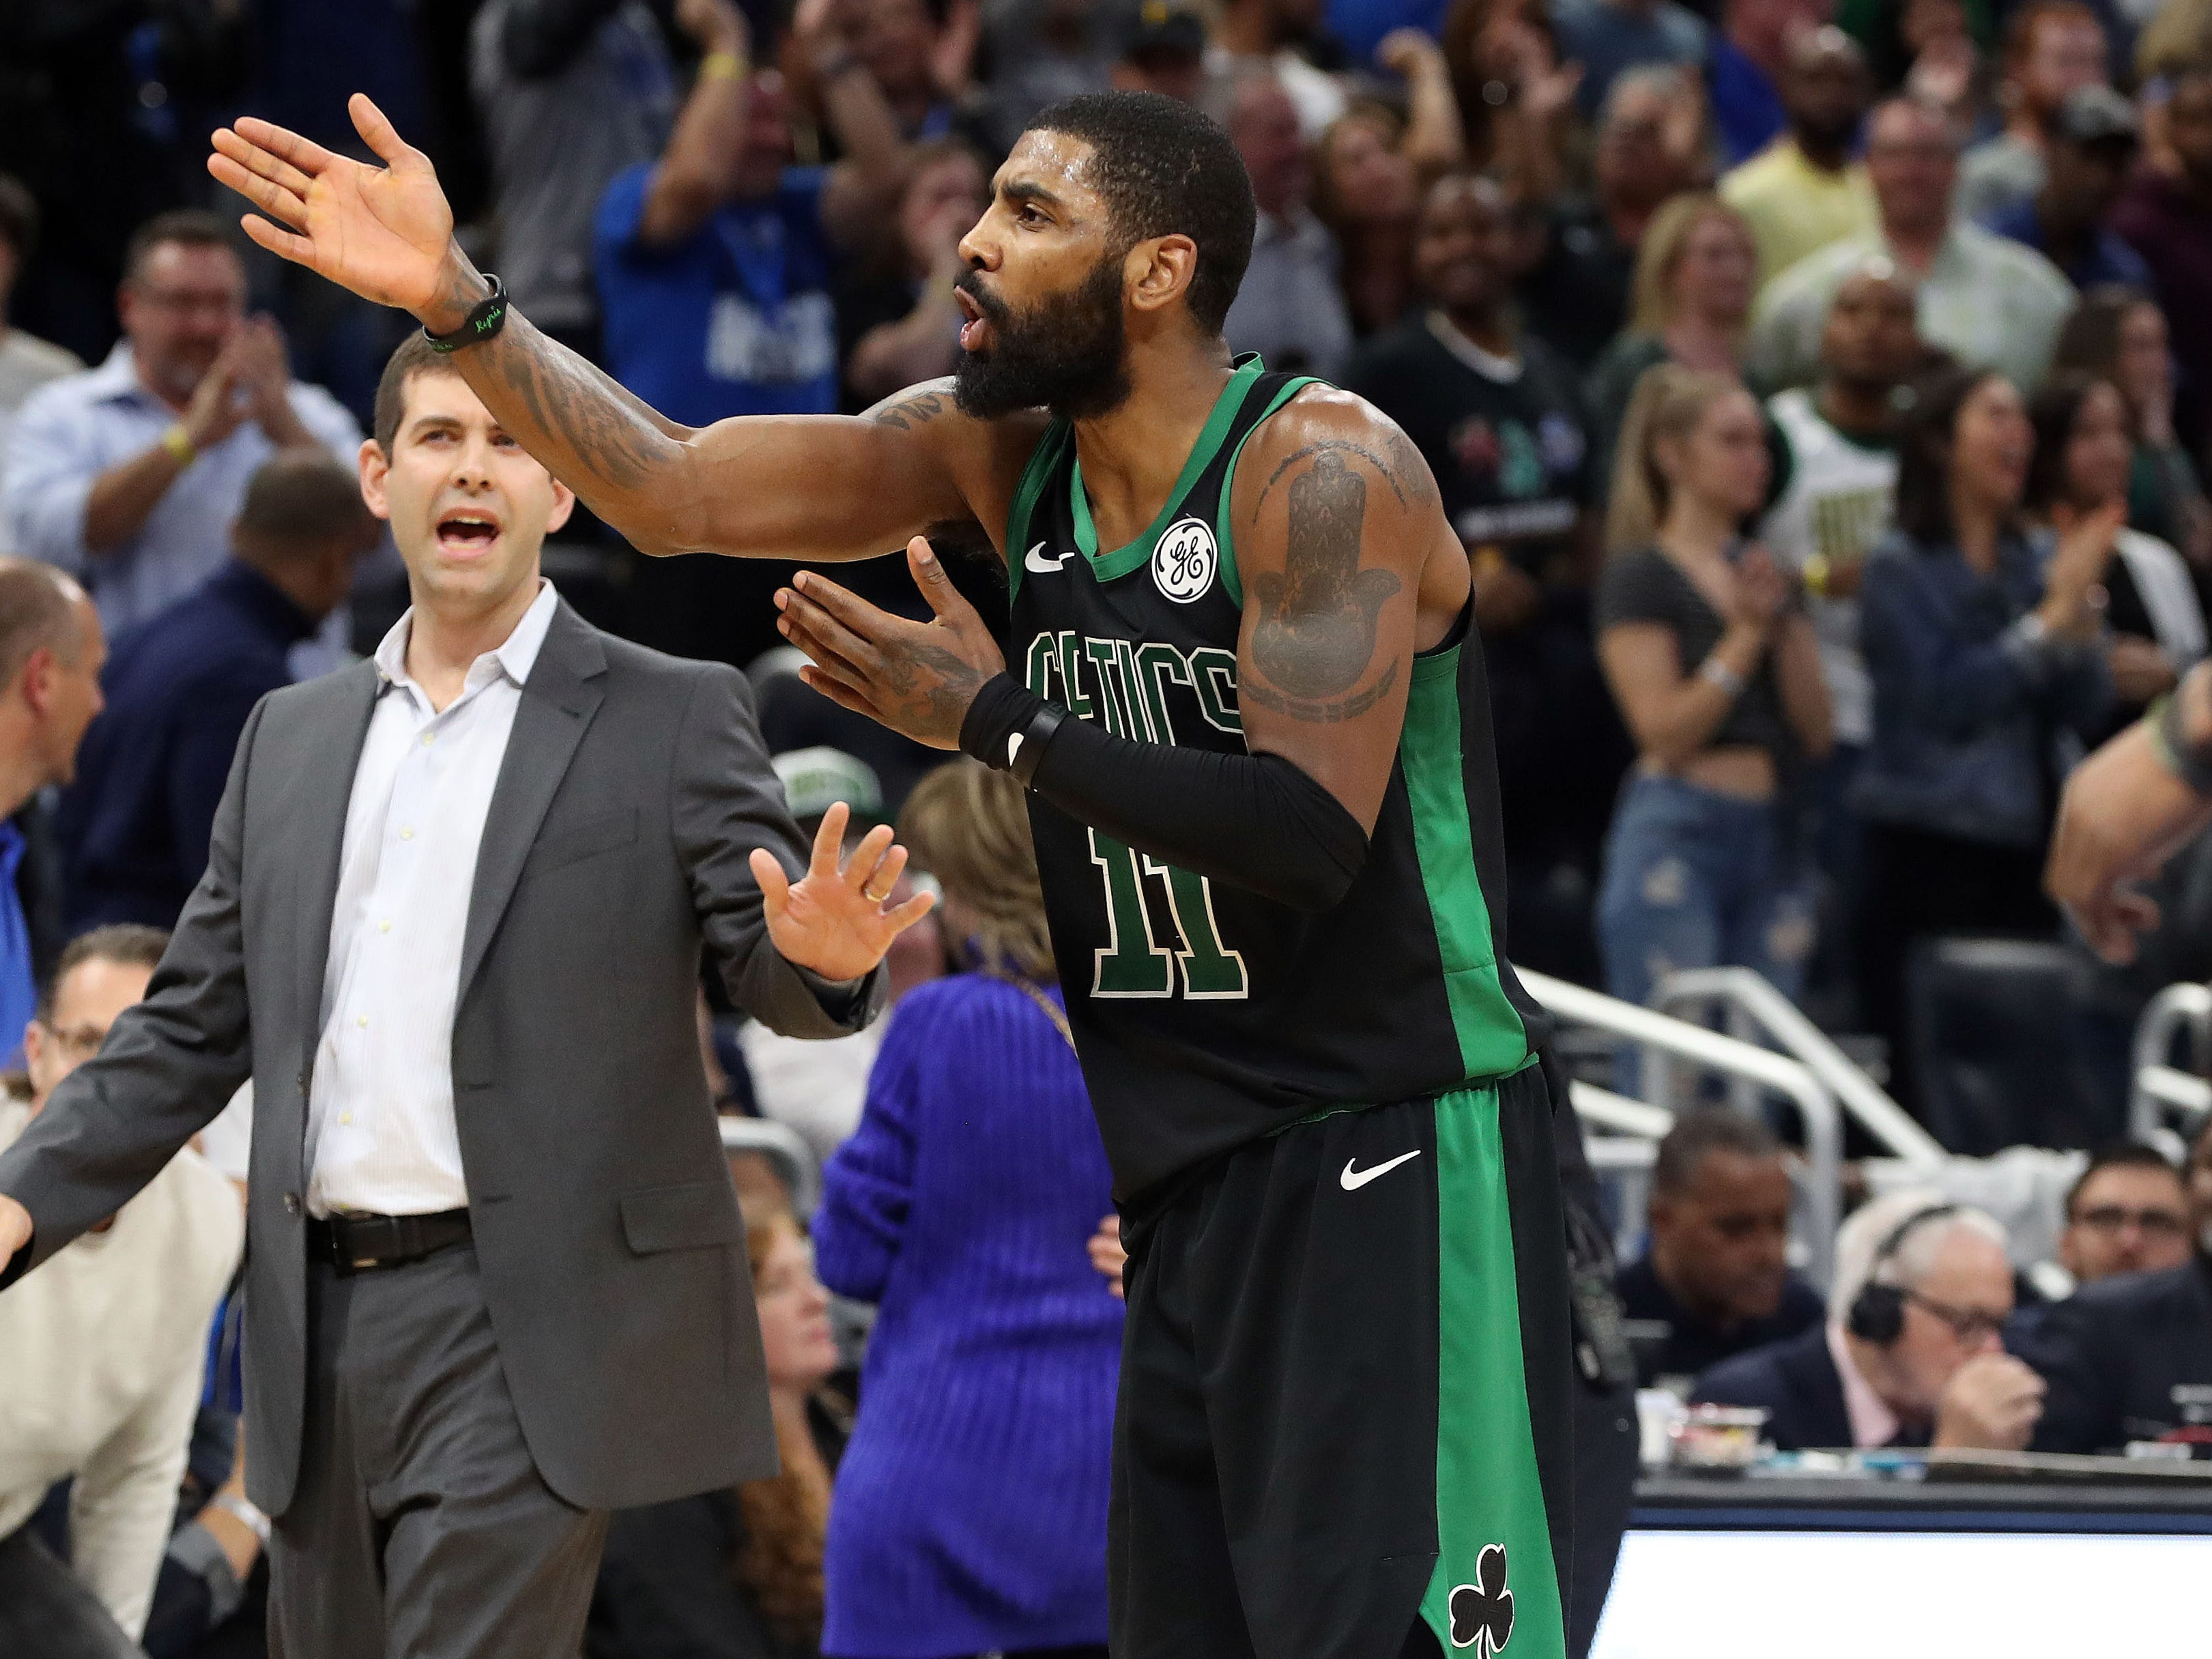 Jan. 12: Celtics guard Kyrie Irving expresses his frustration with not touching the ball on the final possession of a close loss to the Magic.